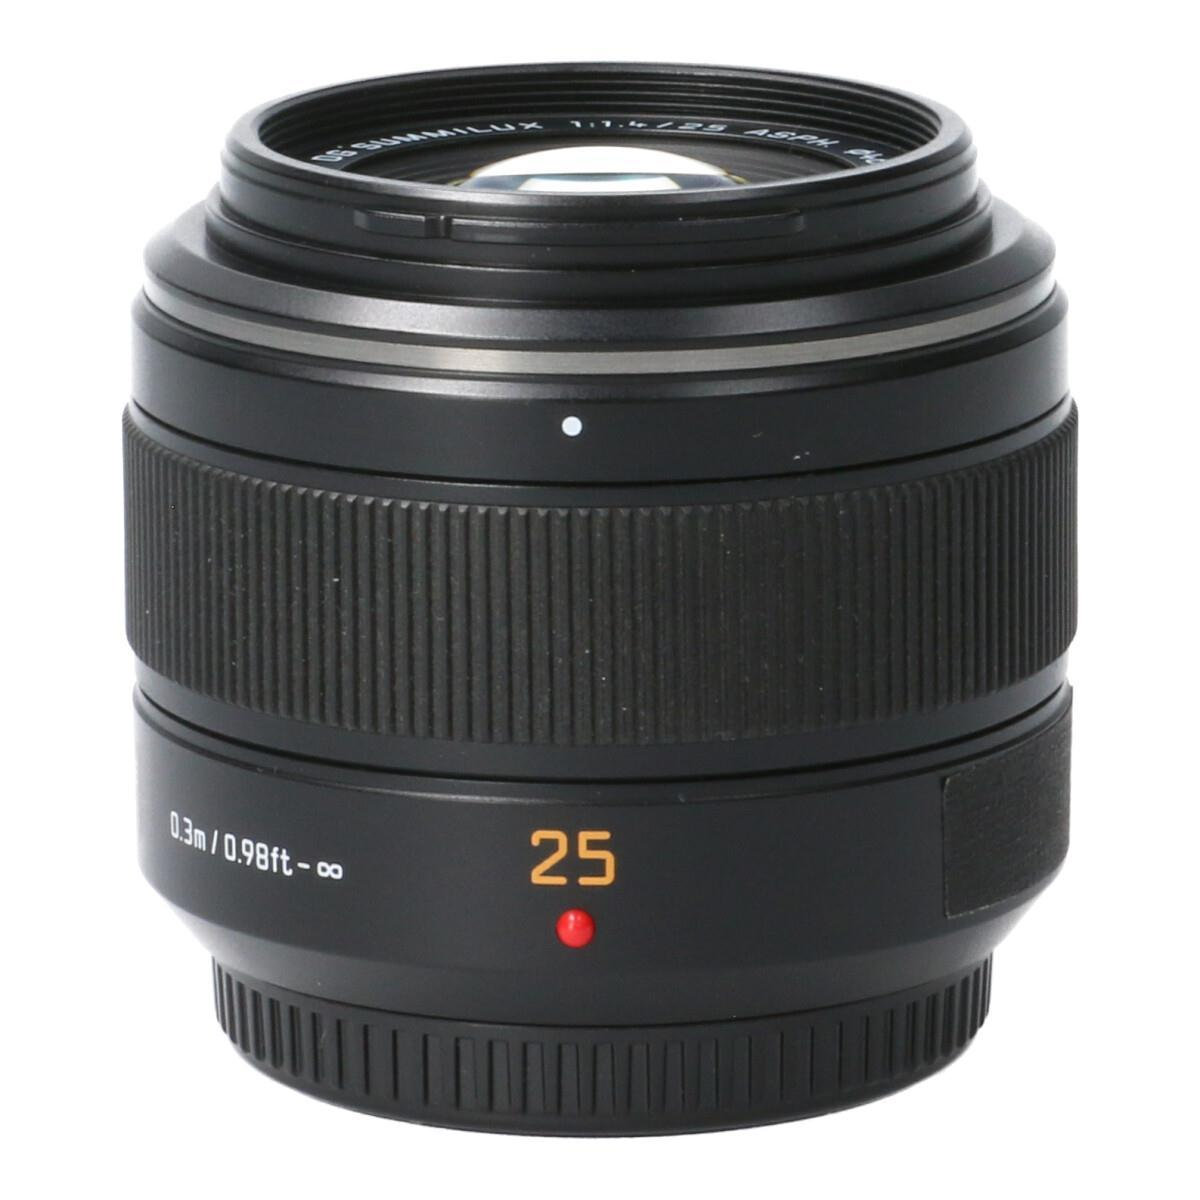 PANASONIC DG SUMMILUX25mm F1.4【中古】